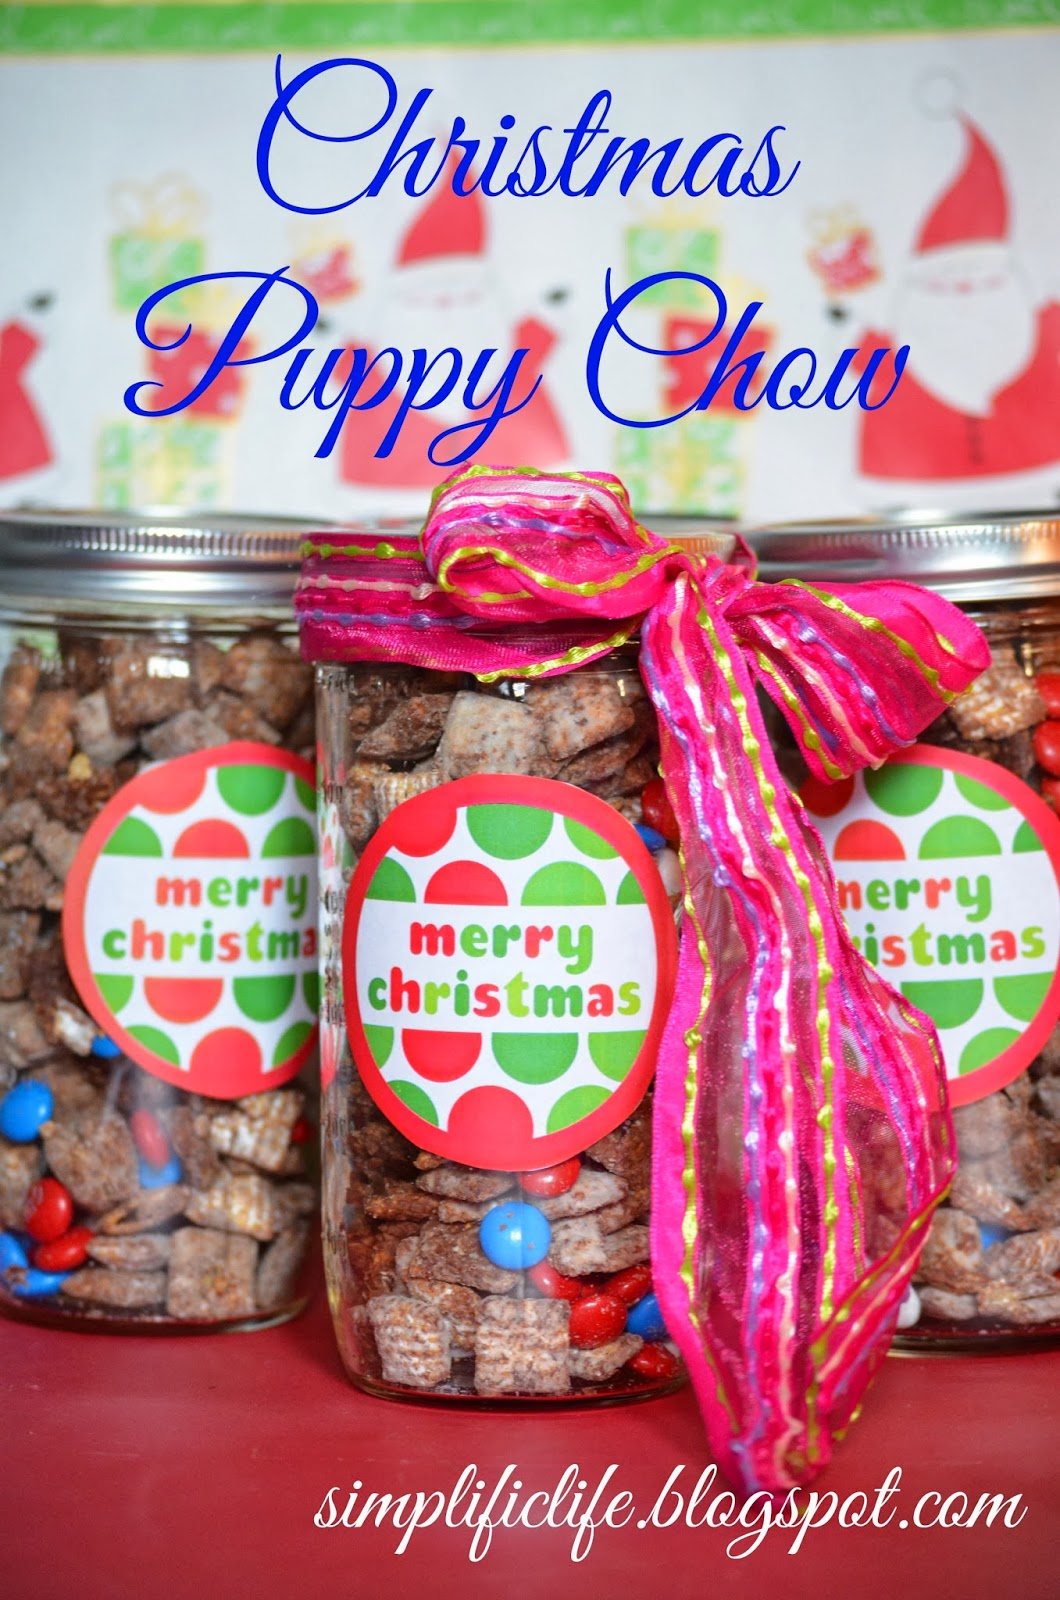 Christmas Puppy Chow.The Simple Life Christmas Puppy Chow